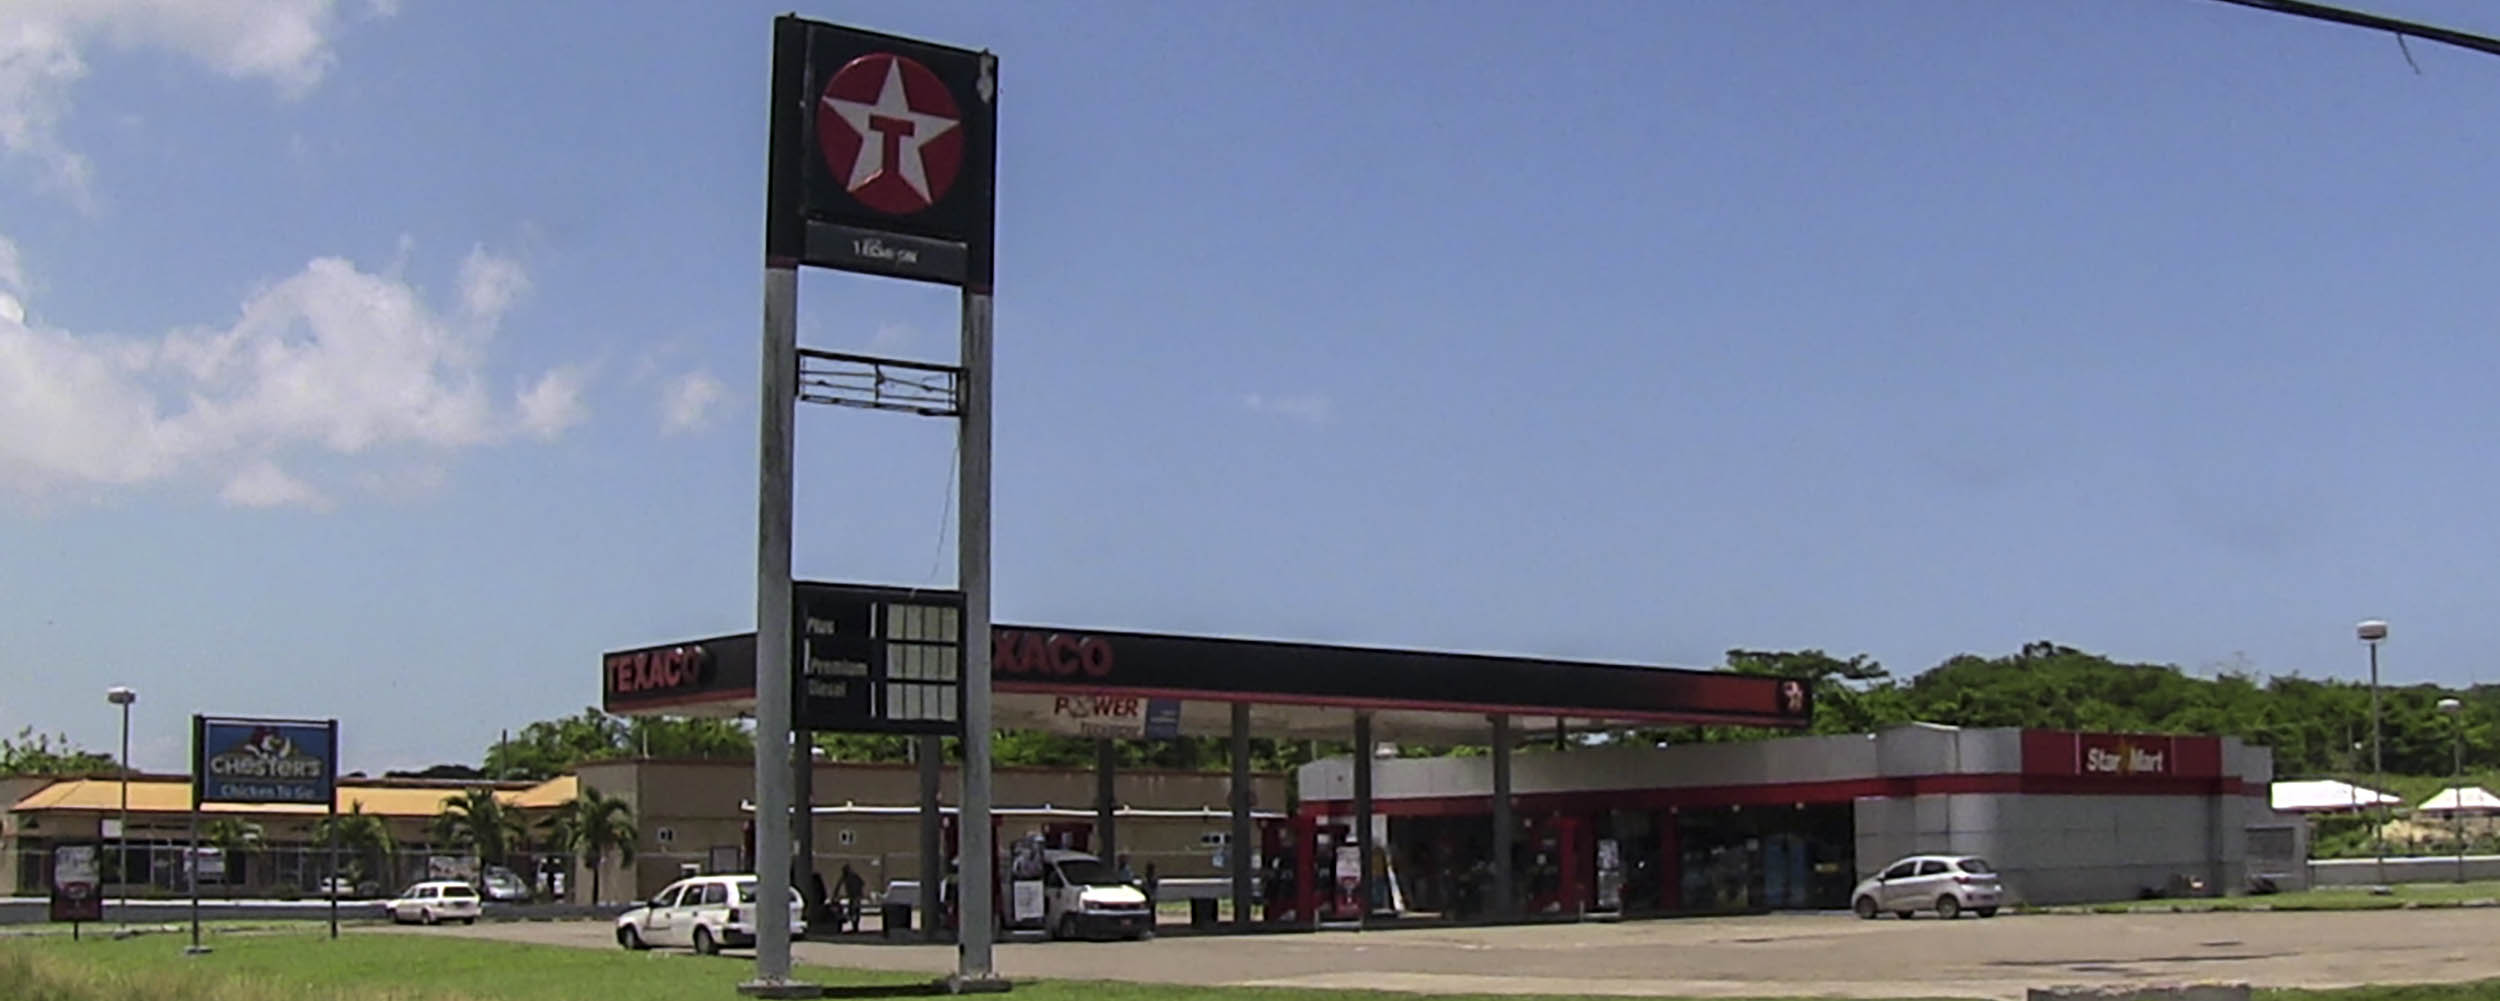 Texaco Station - Nonpareil Road - Negril Jamaica